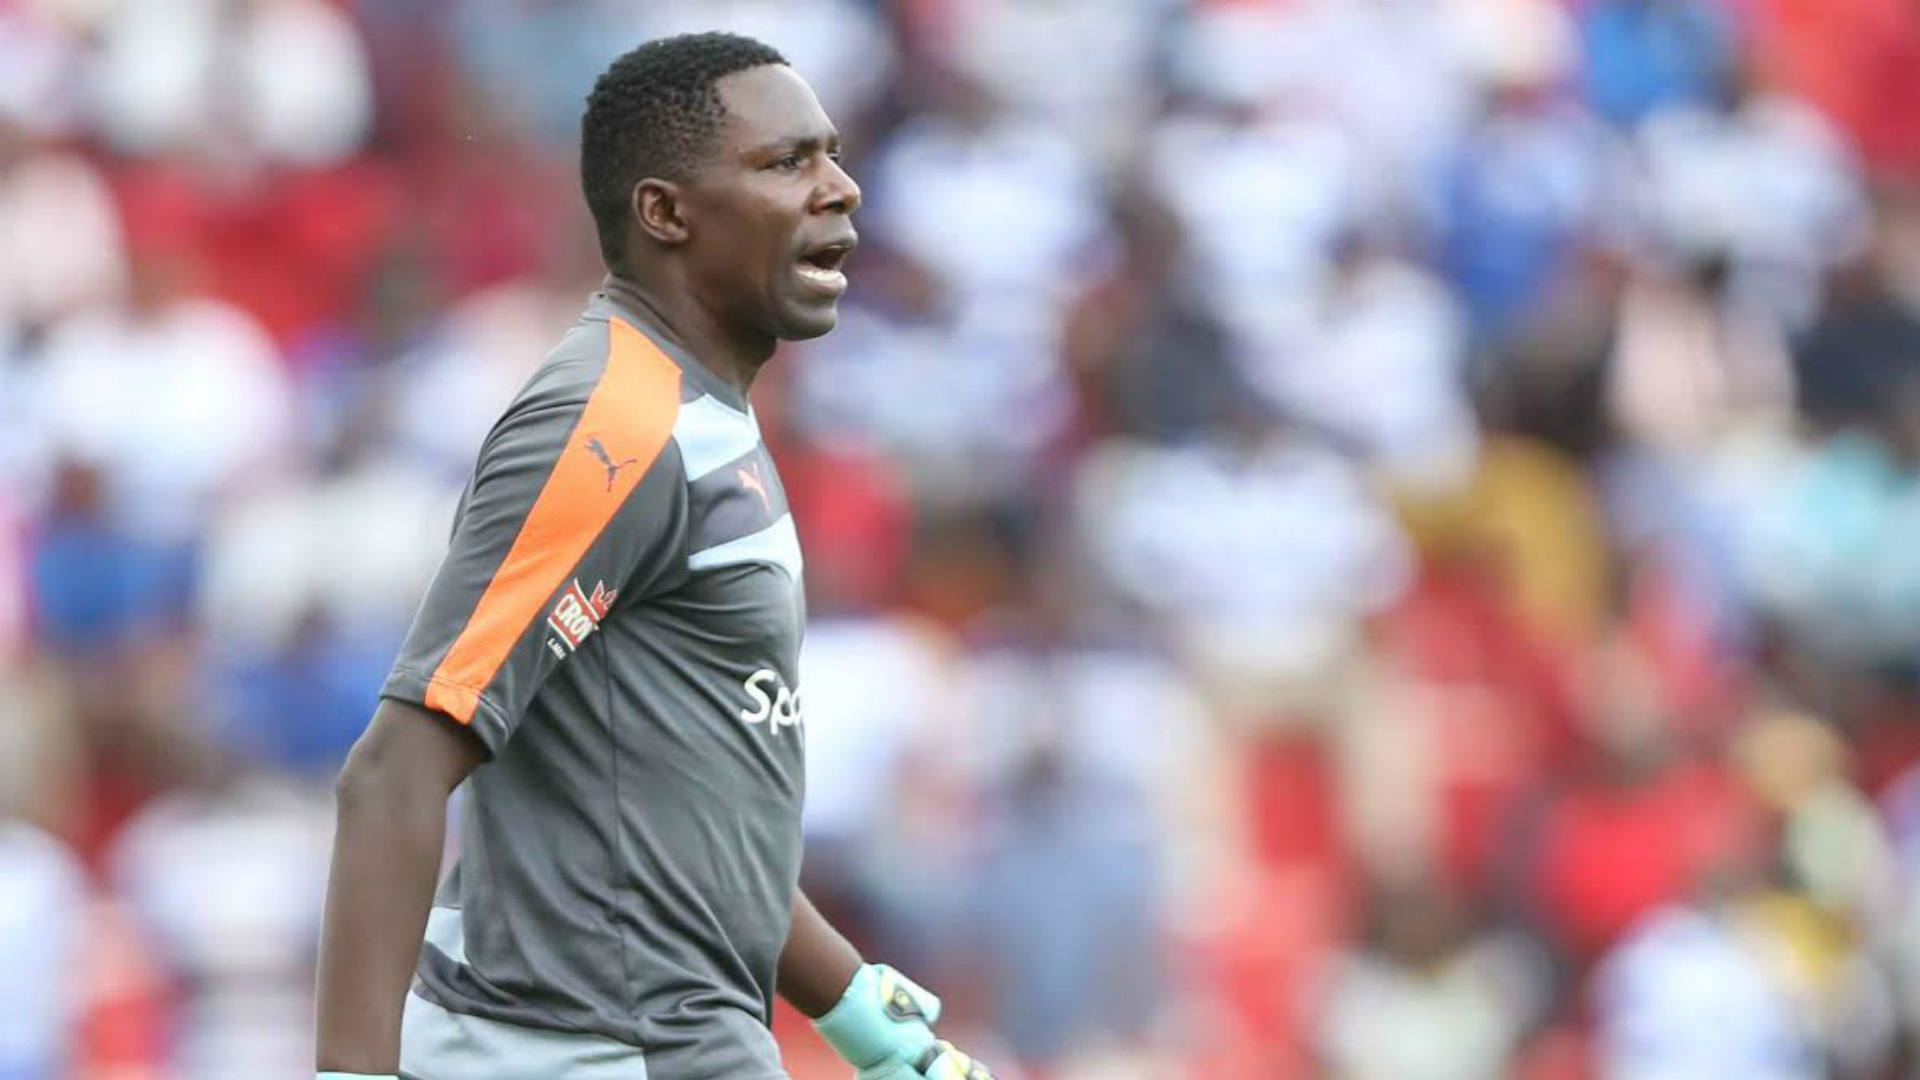 Gor Mahia keeper Boniface Oluoch put up a good display against AFC Leopards